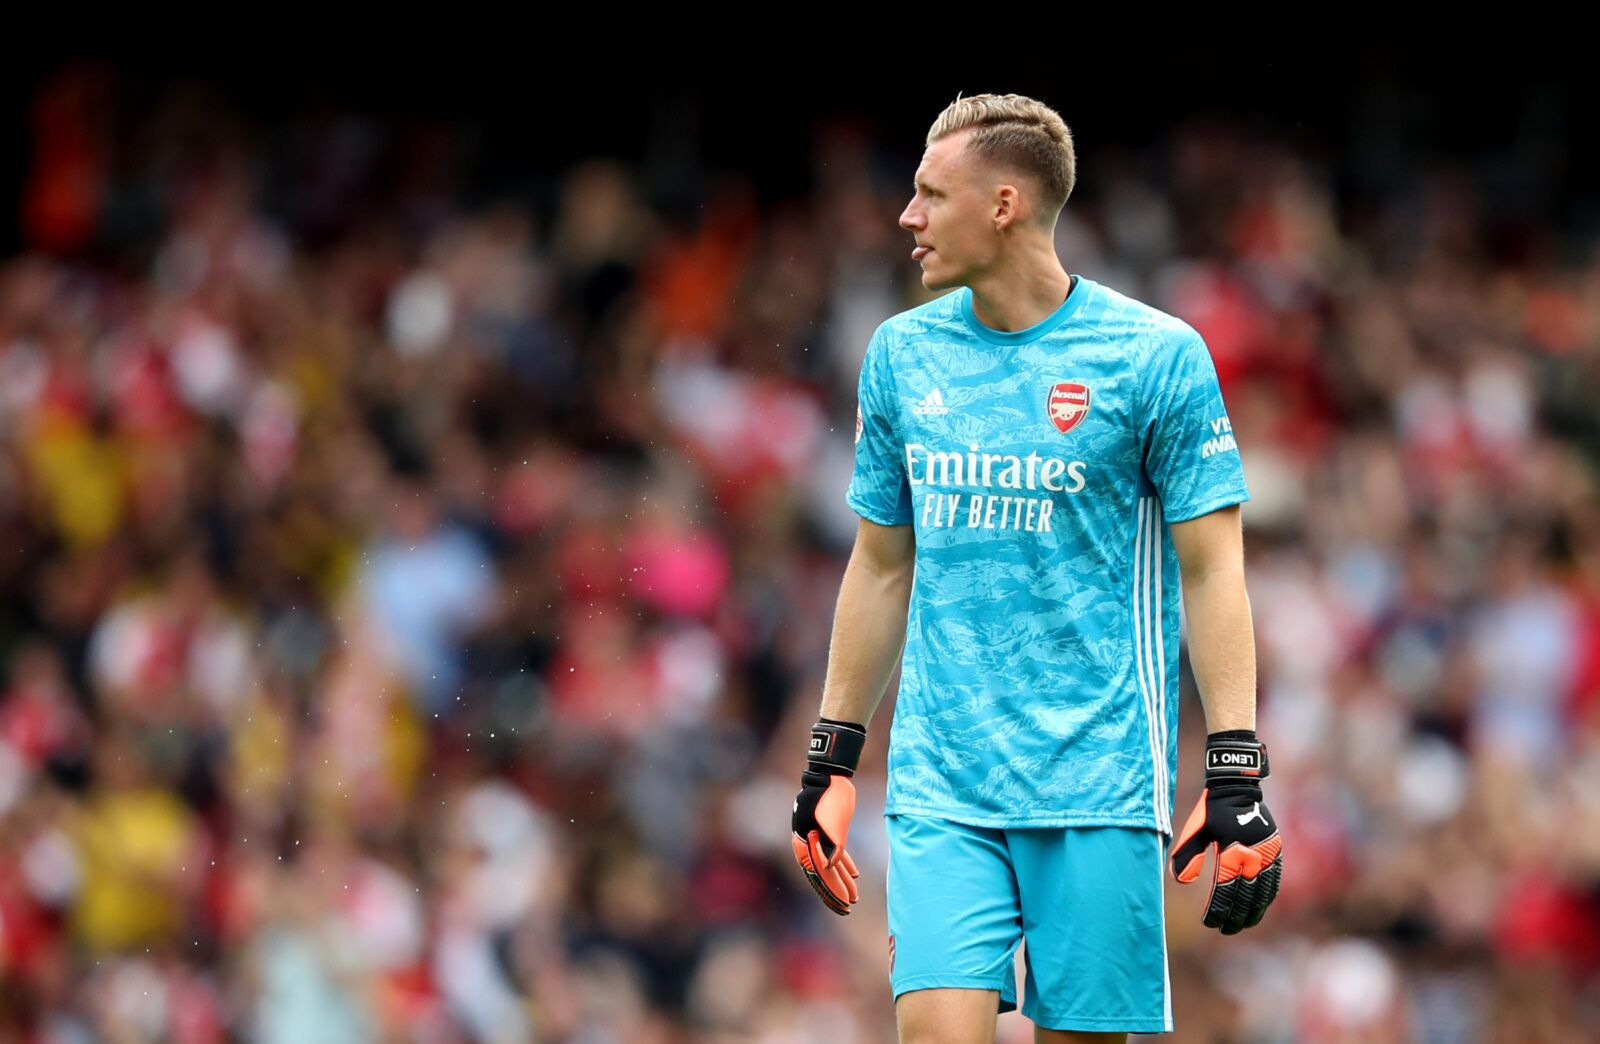 Arsenal: Bernd Leno exit another twig on the dumpster fire